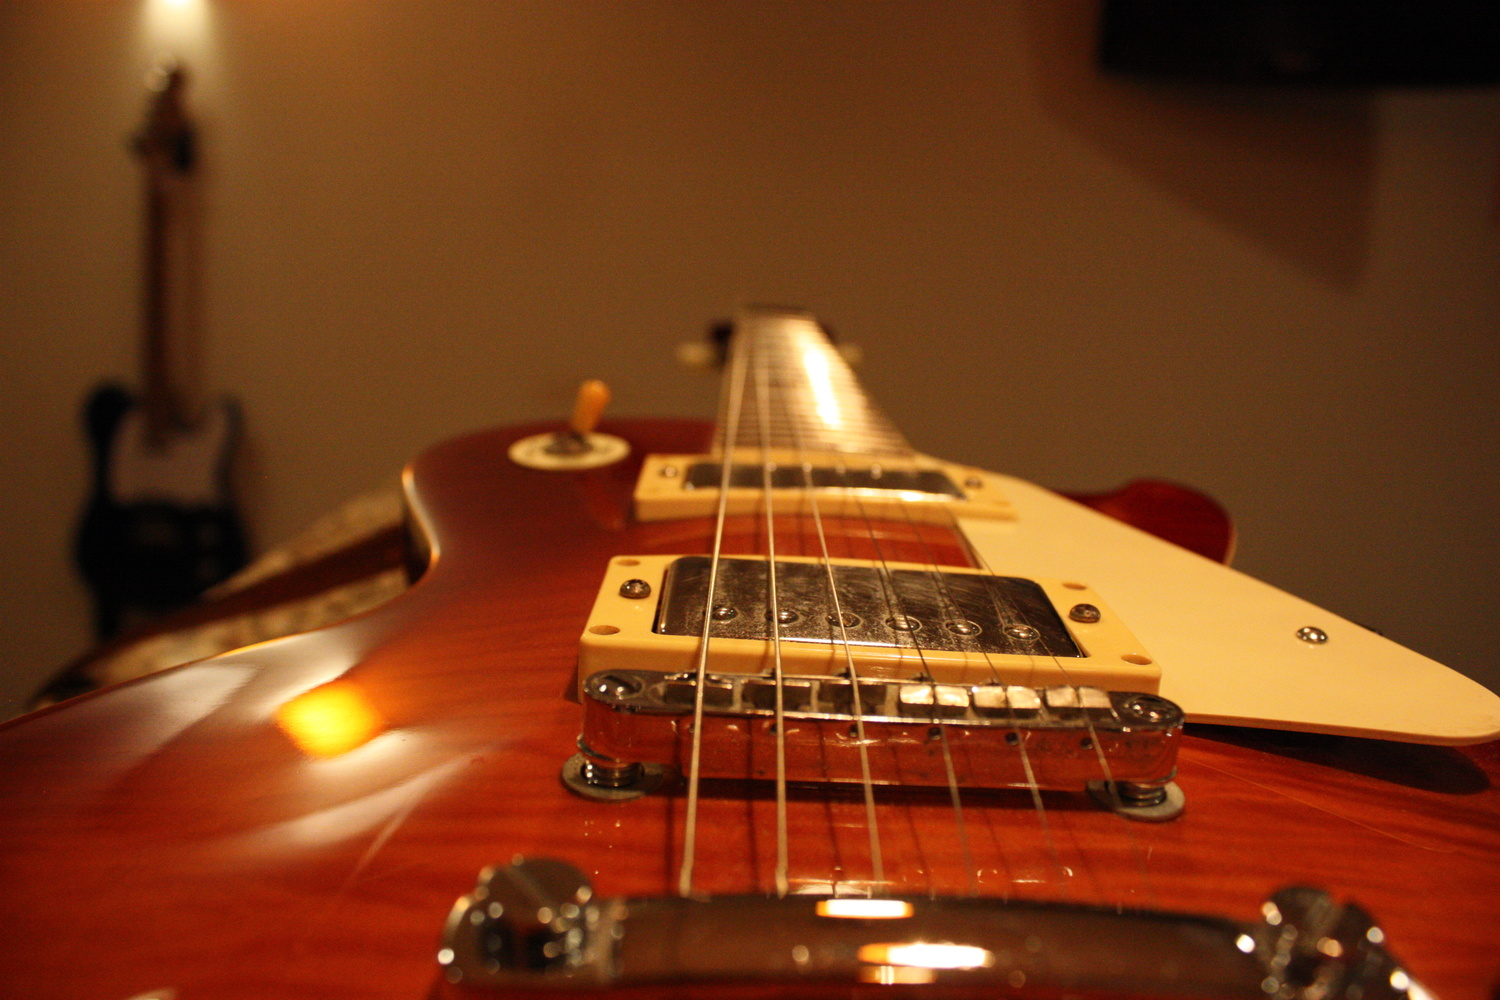 Guitar Collection by Dr. Lisa Strusowski